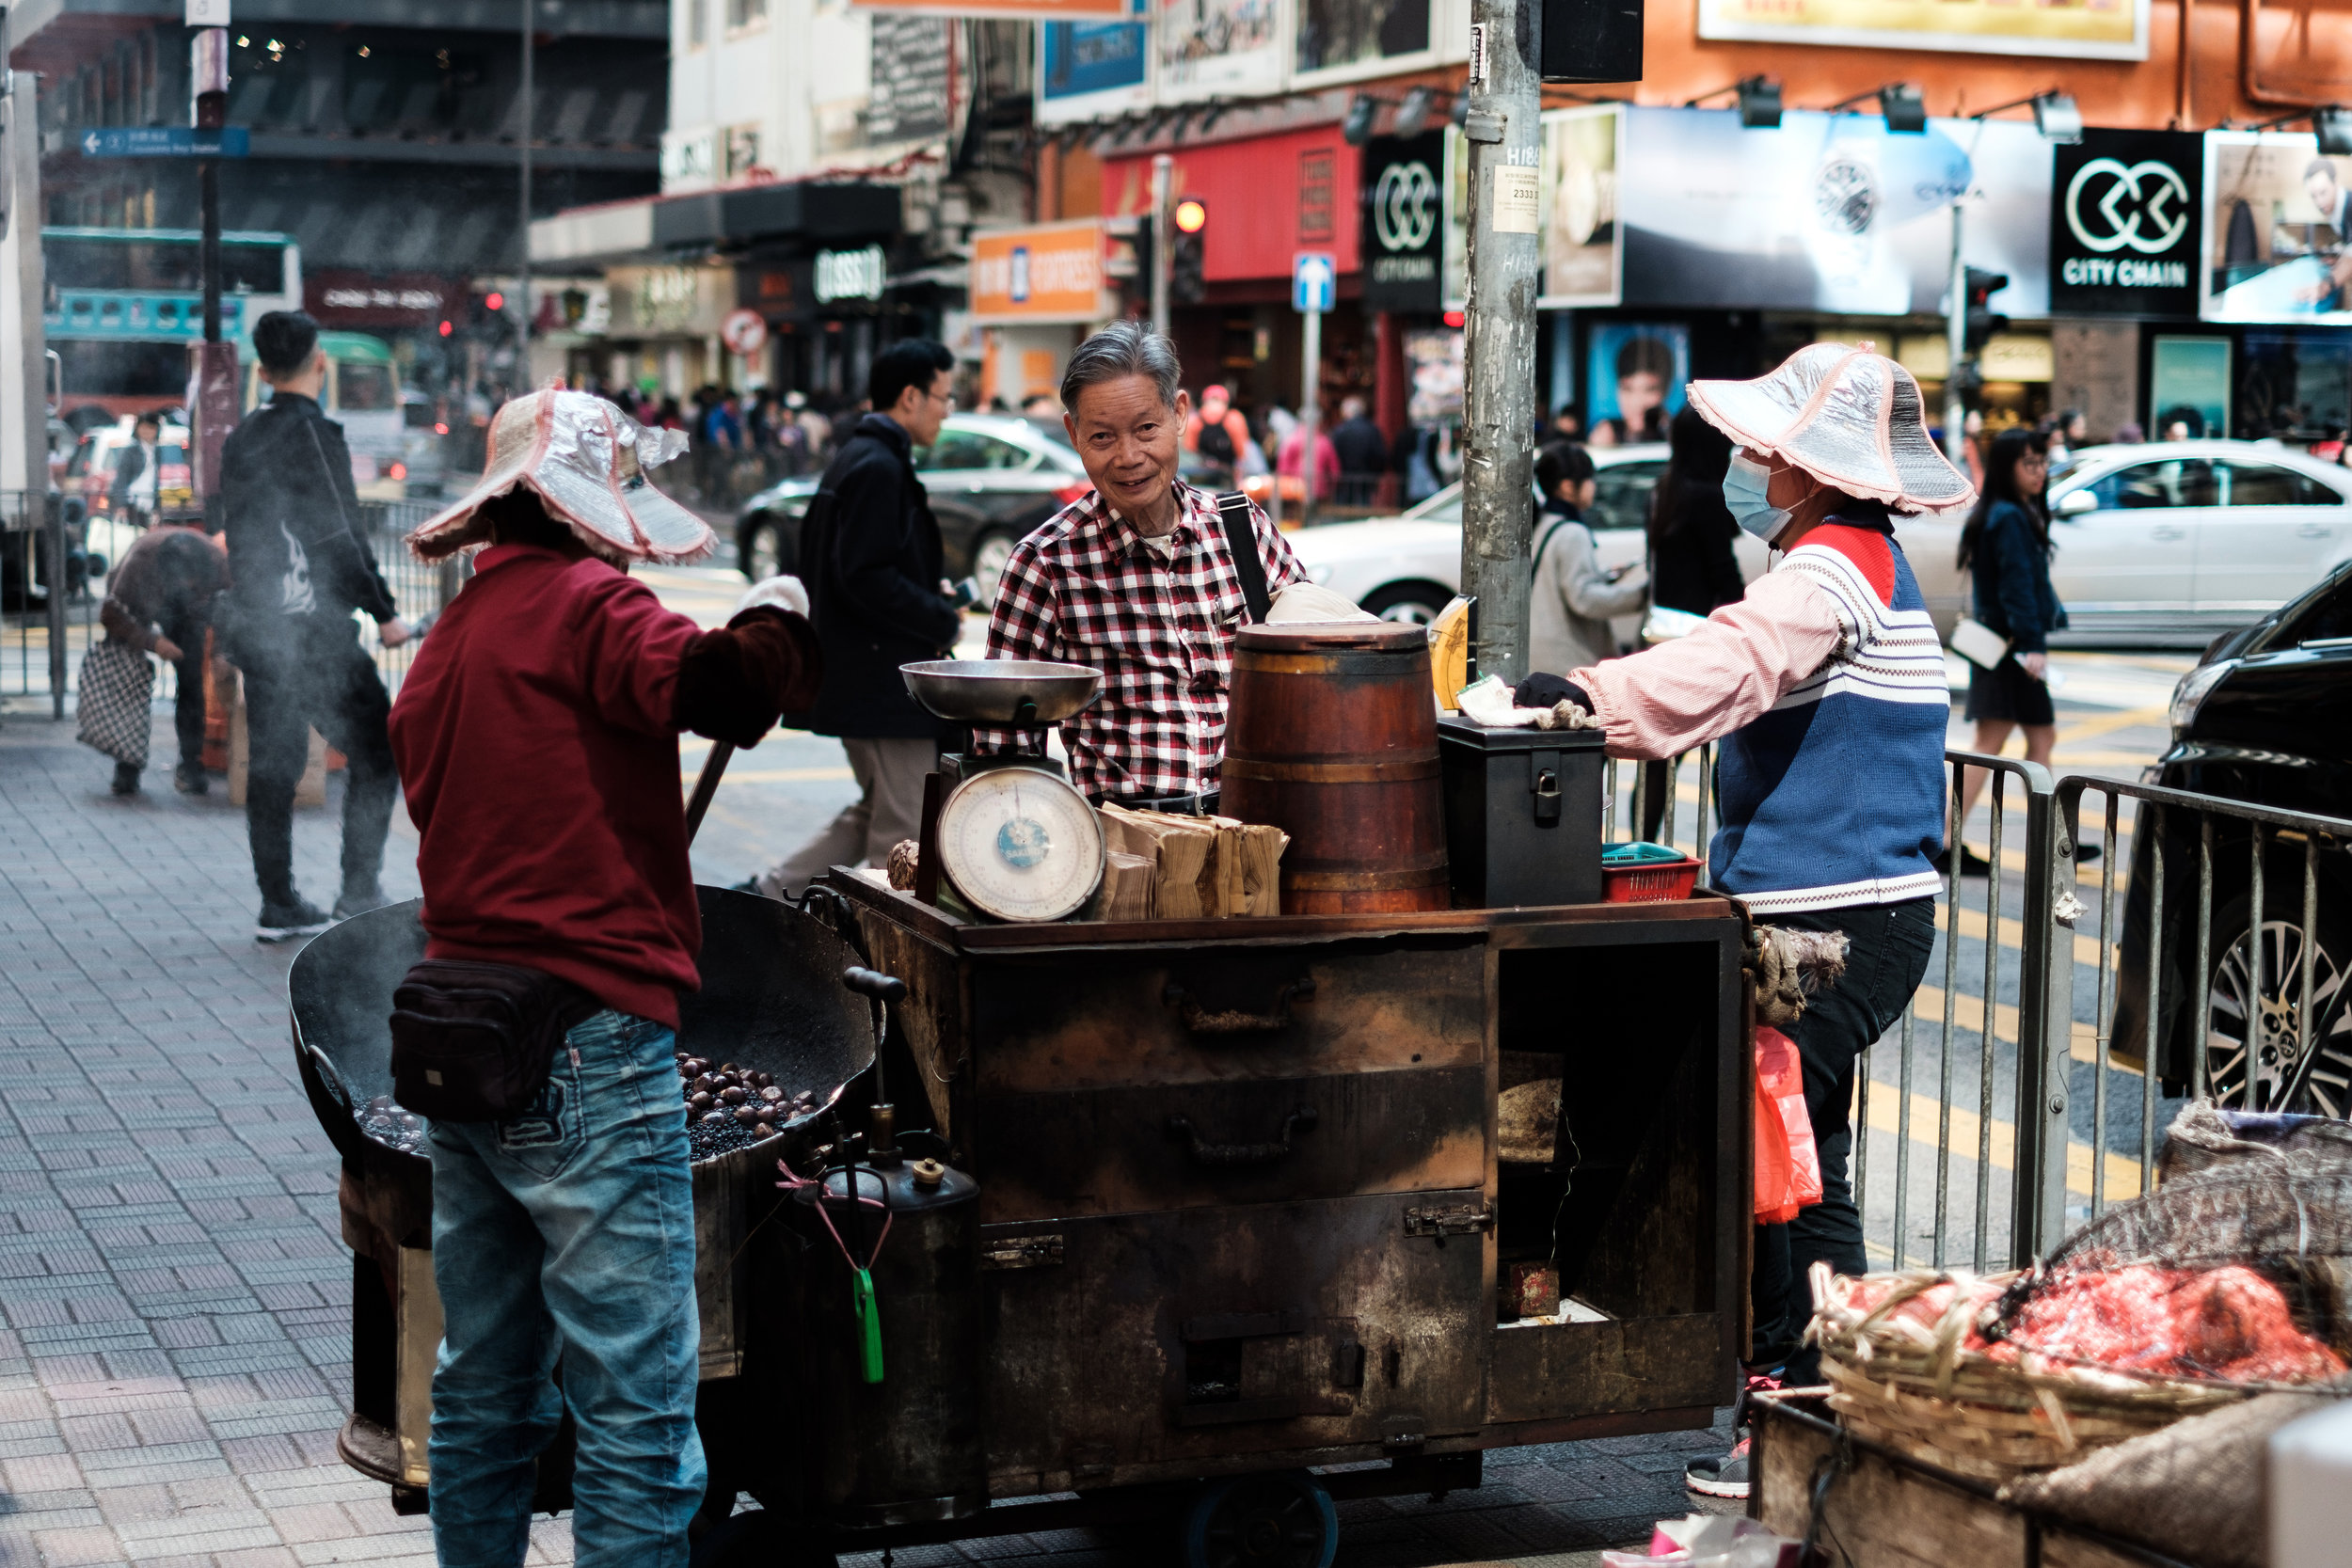 A group of people gather around a food vendor in Causeway Bay, Hong Kong